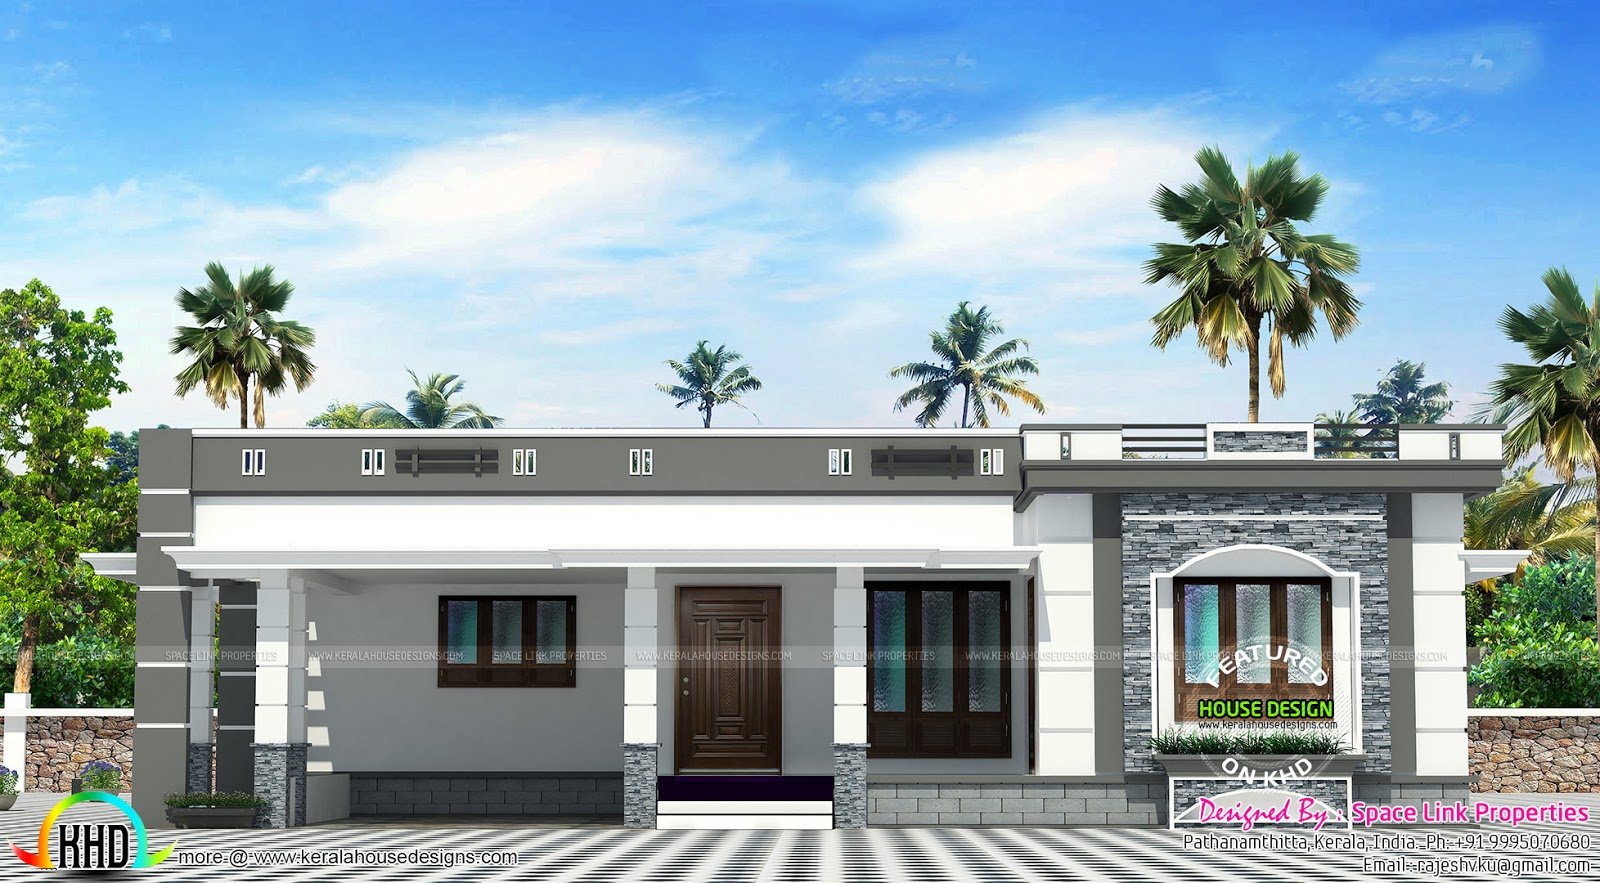 158 sq m flat roof single floor home kerala home design for Roof floor